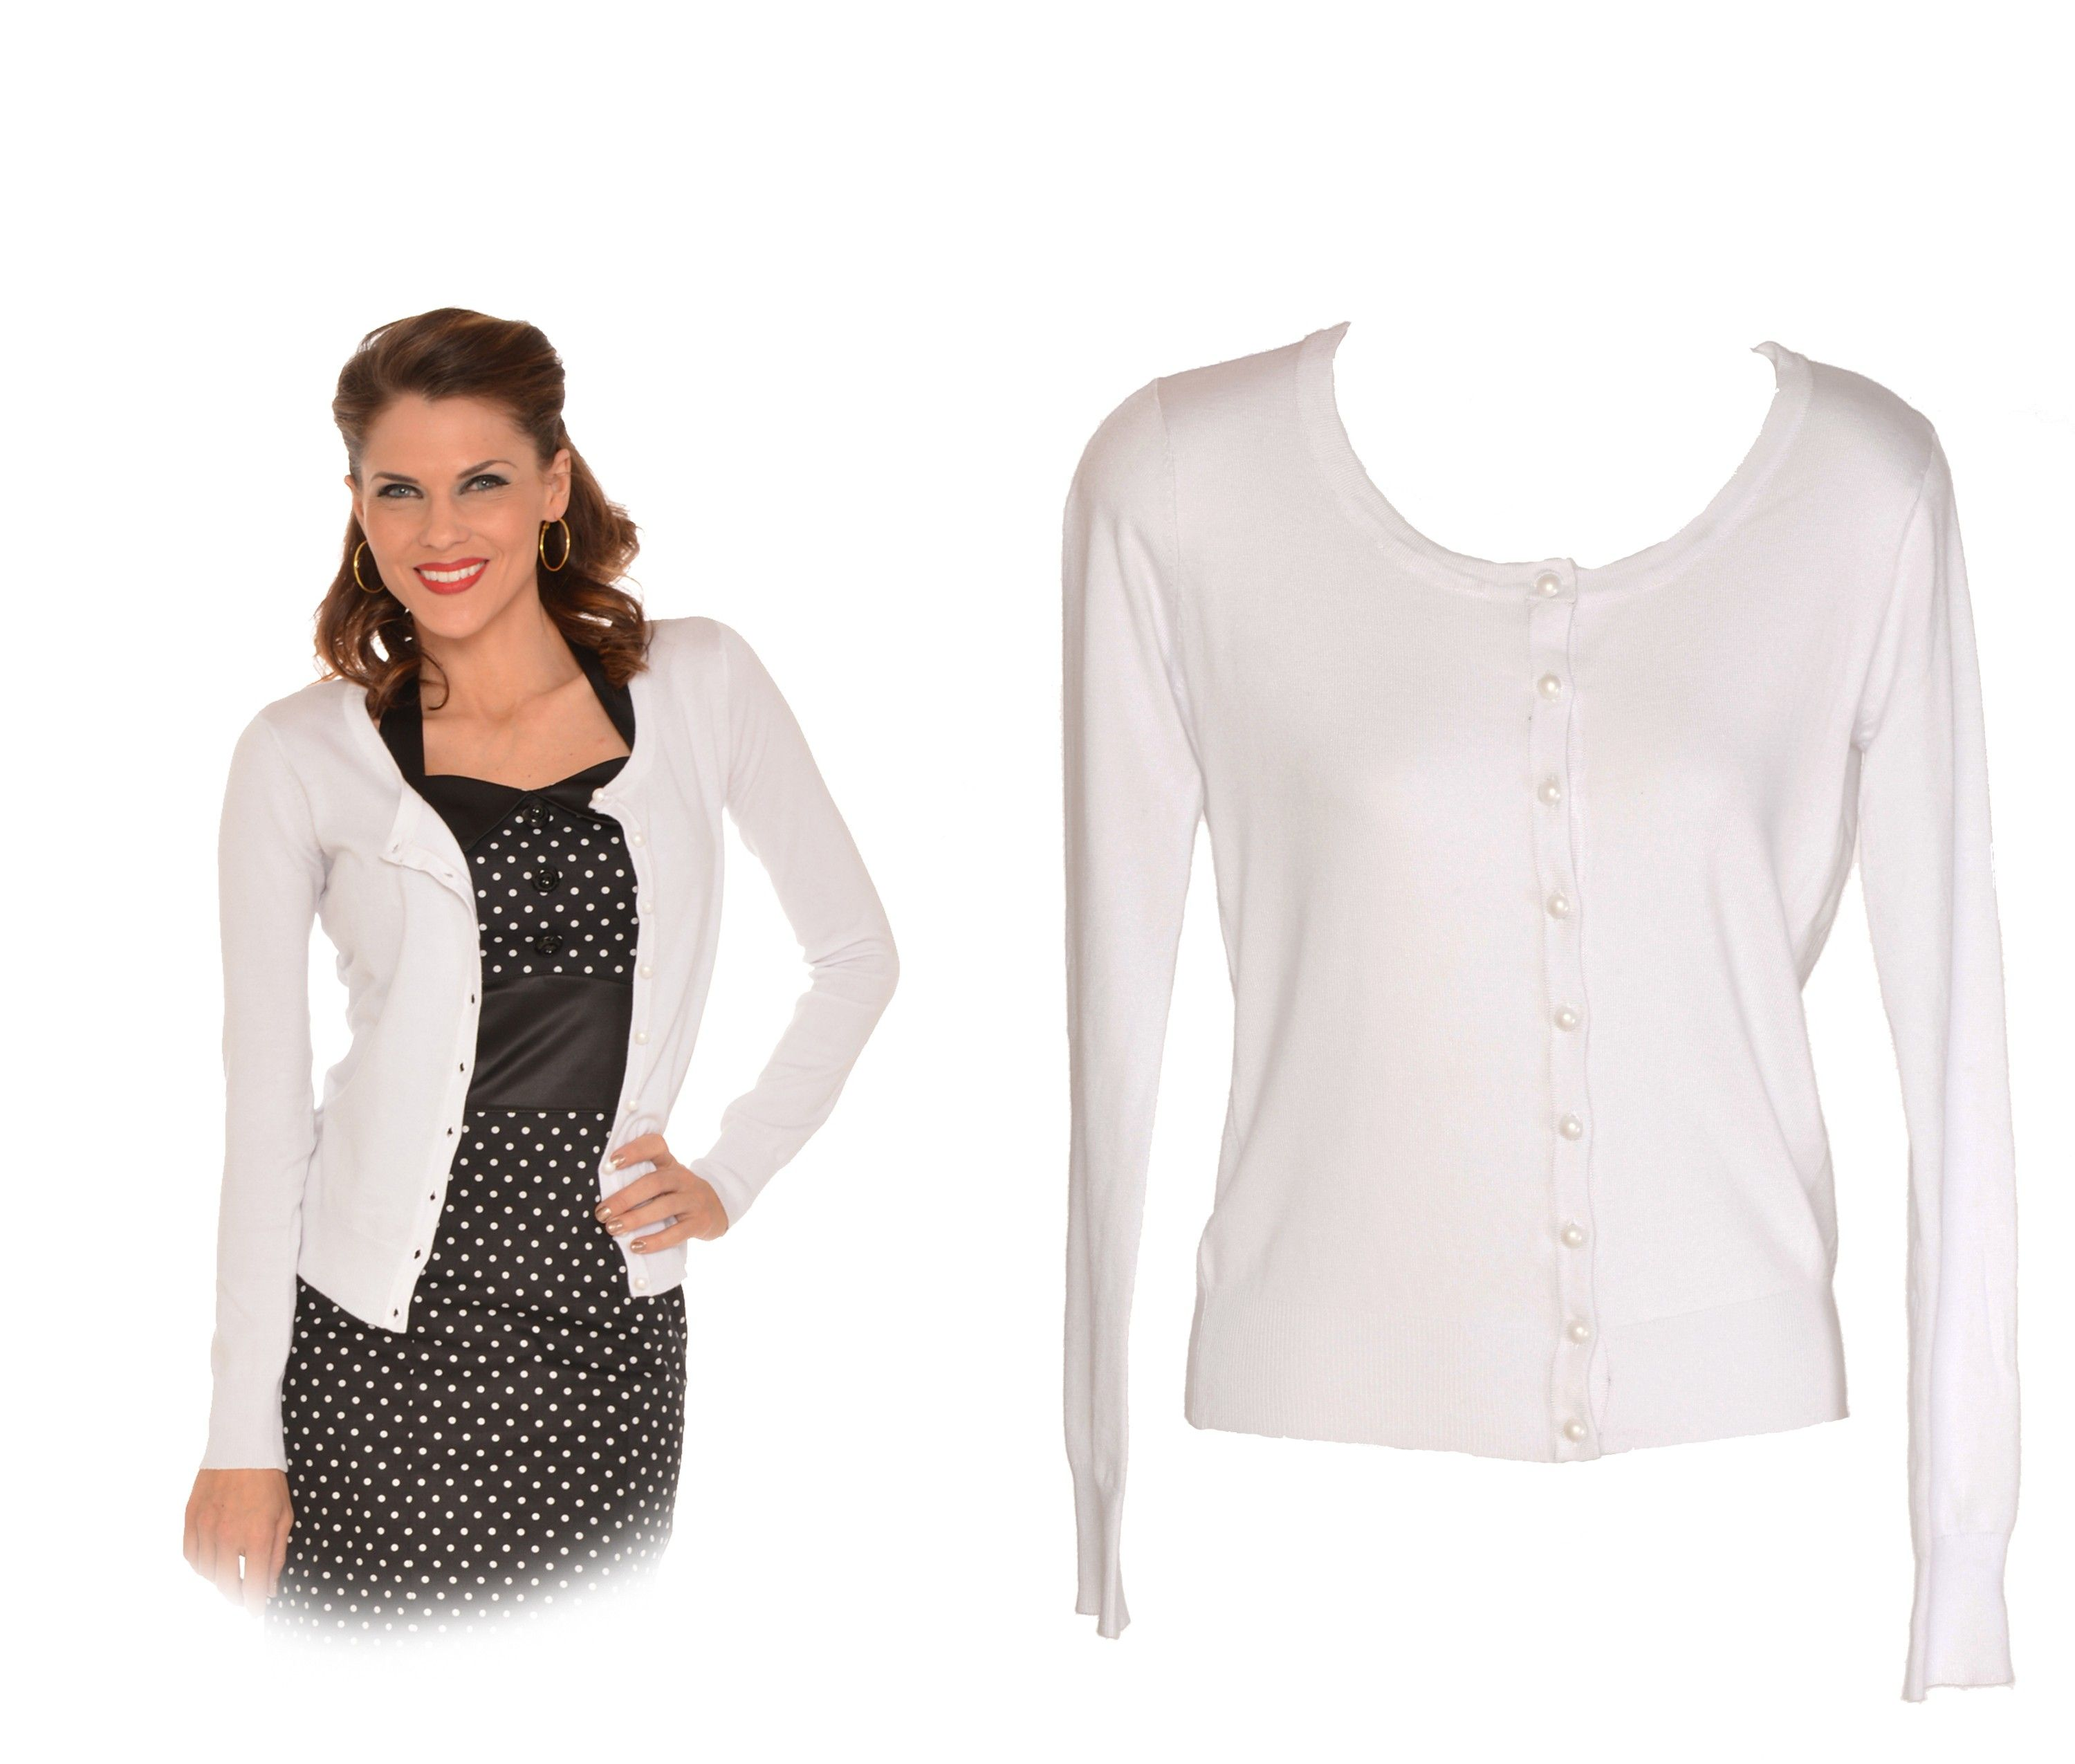 White Ladies 50's Vintage Style Sweater Cardigan Adult | wedding ...